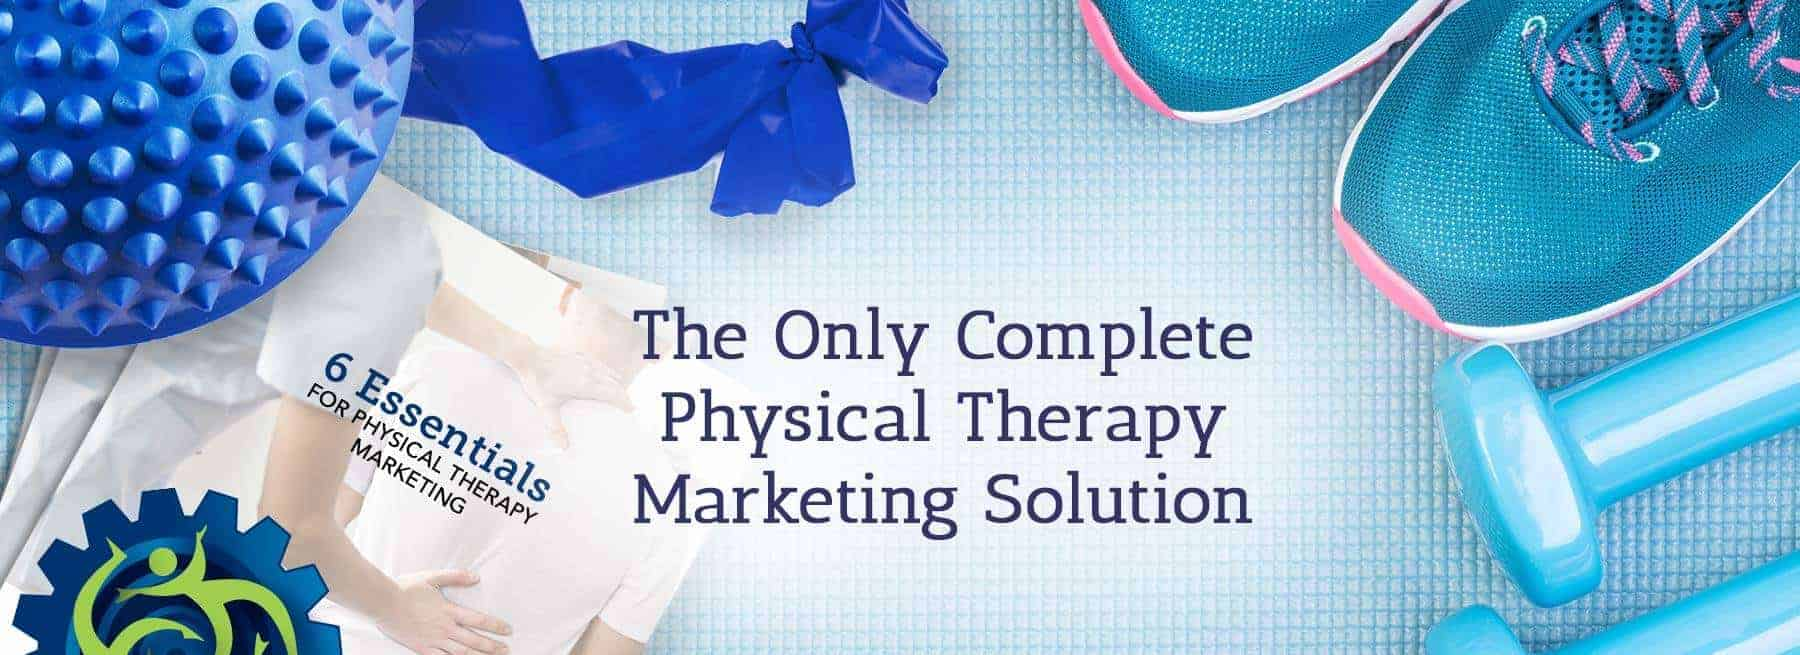 Complete Physical Therapy Marketing Solution - Image